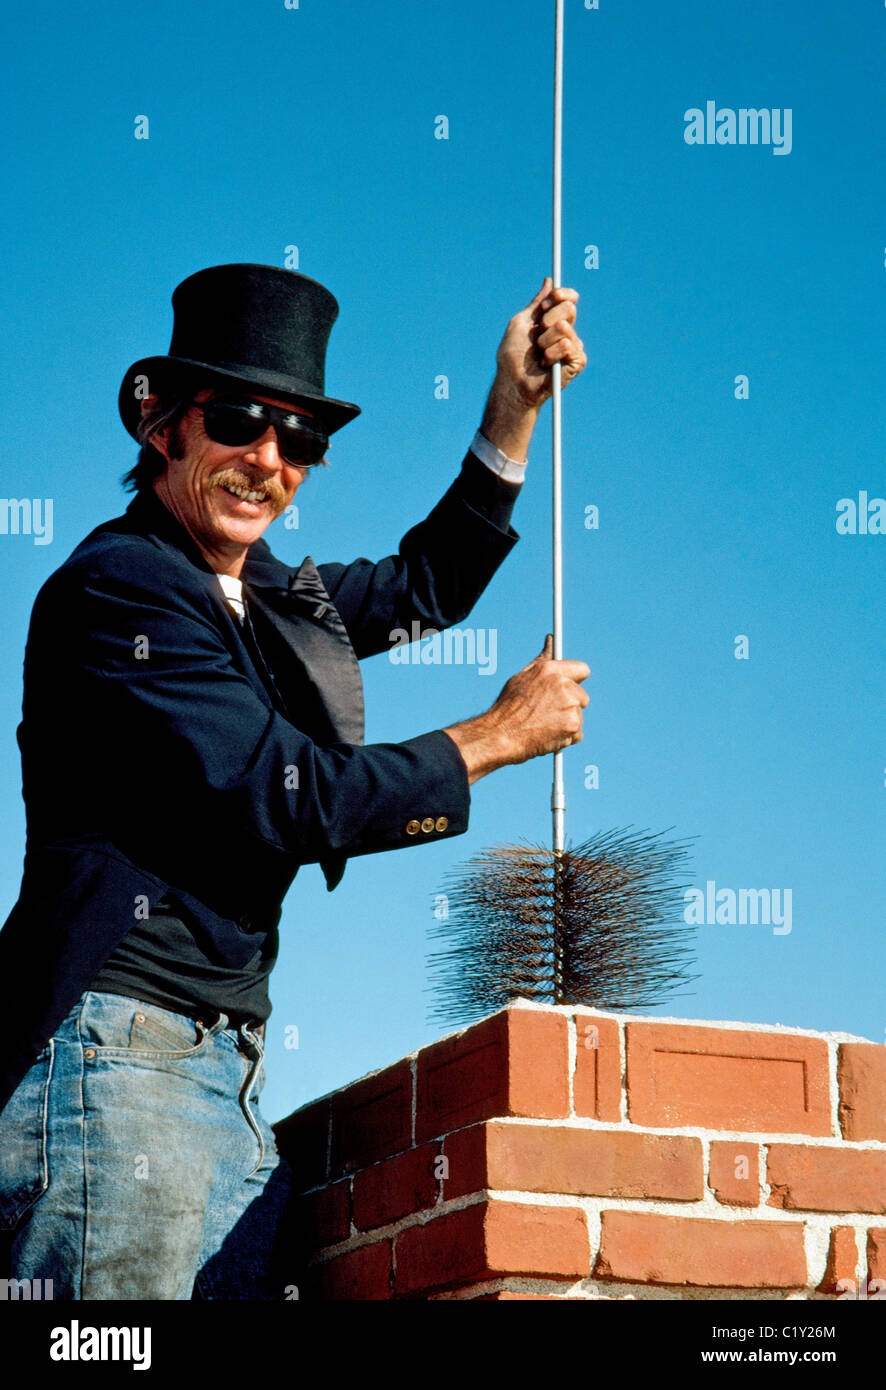 A Chimney Sweep In Black Top Hat And Tuxedo Coat The Work